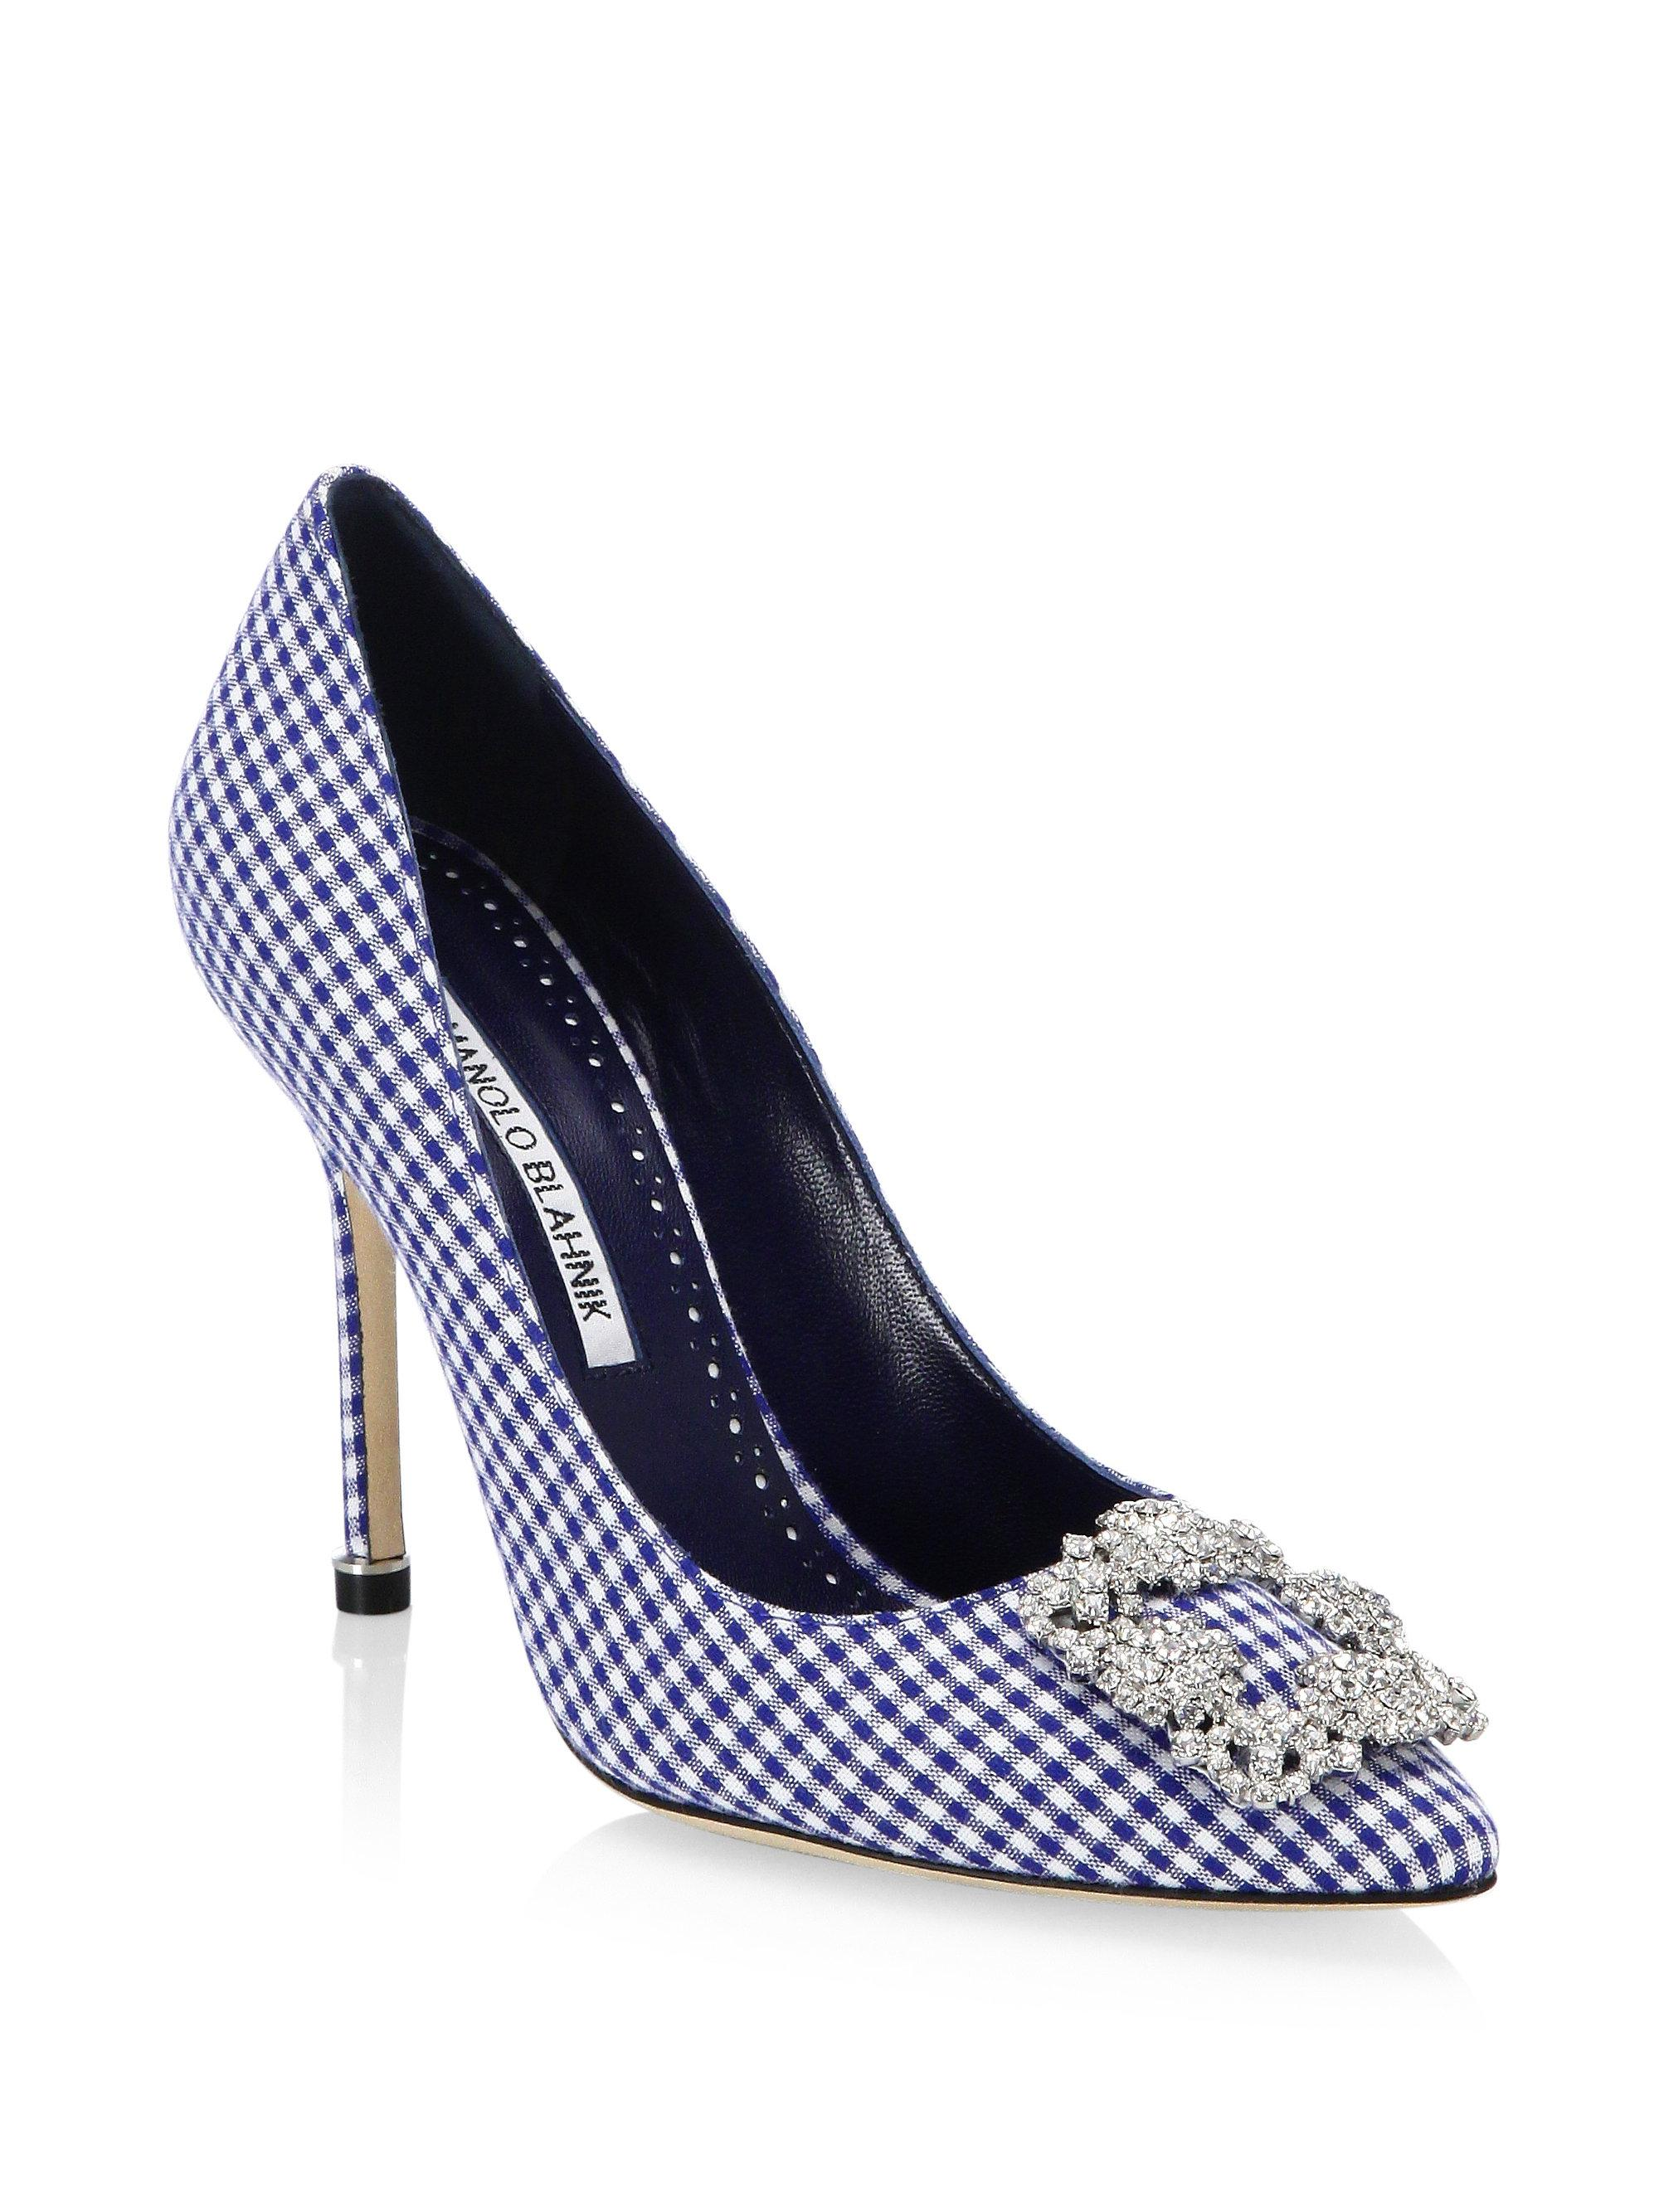 Manolo Blahnik Hangisi 105 Crystal-Buckle Gingham Pump